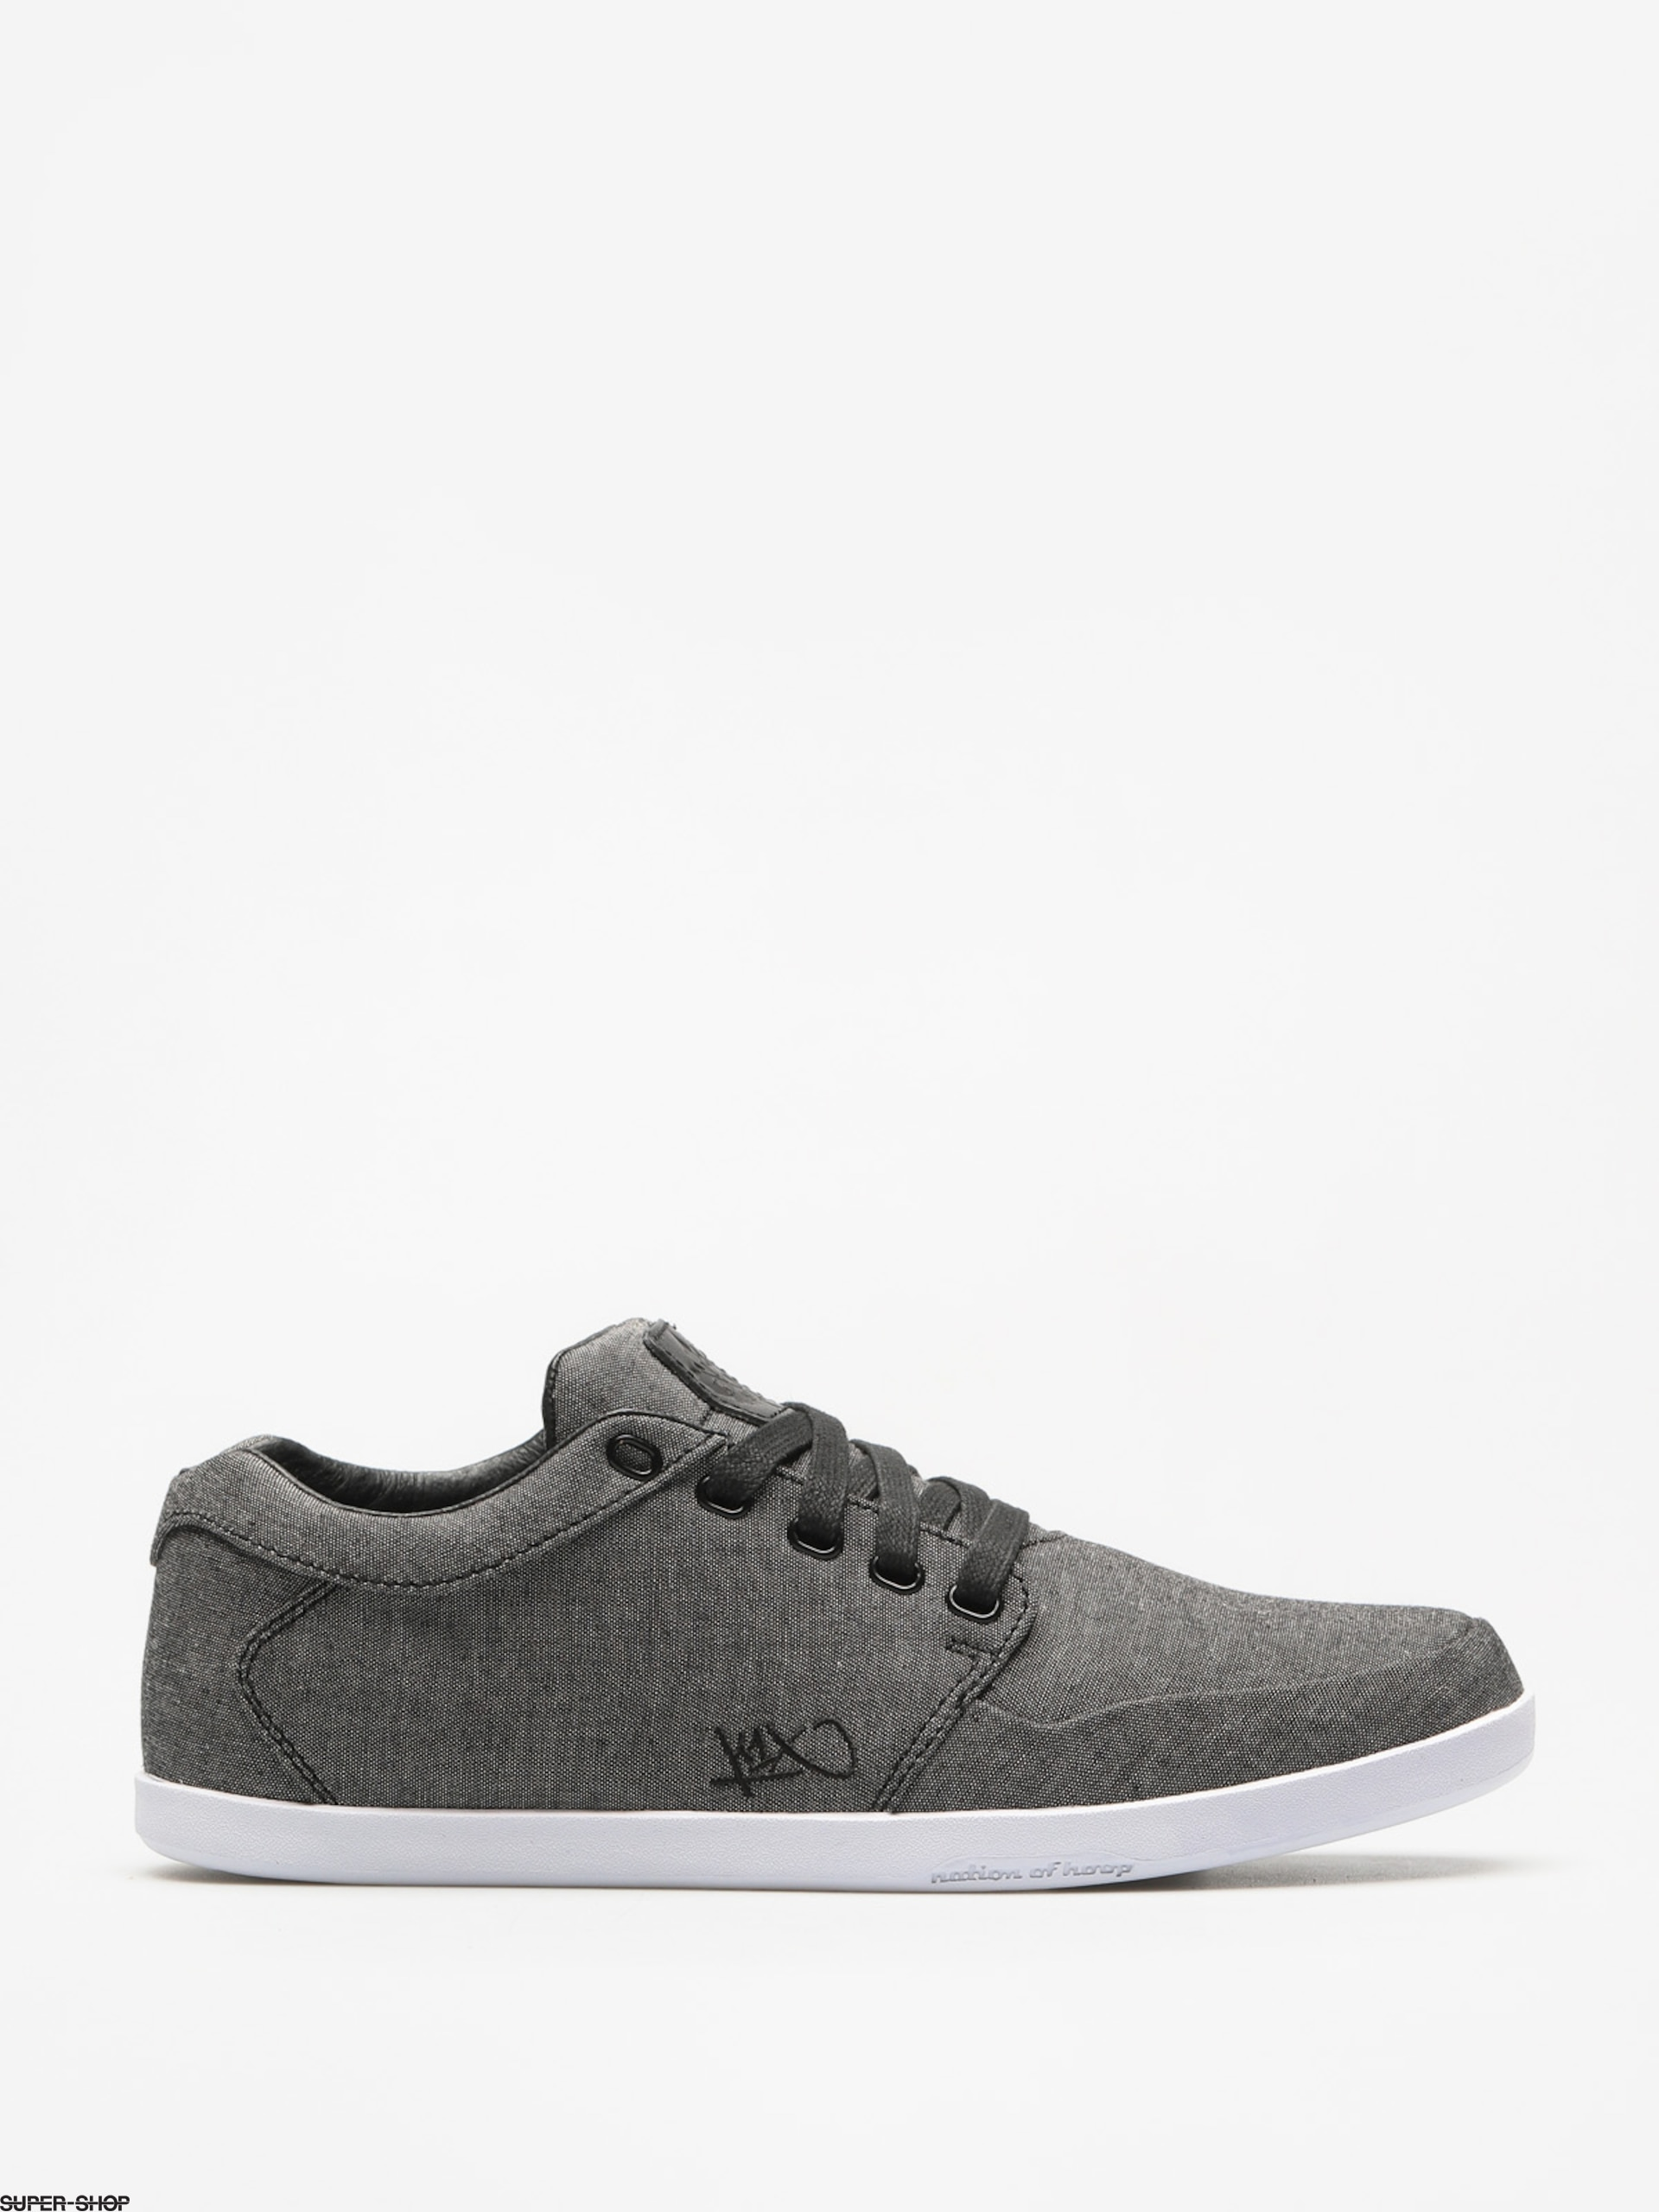 K1x Shoes Lp Low (black oxford)